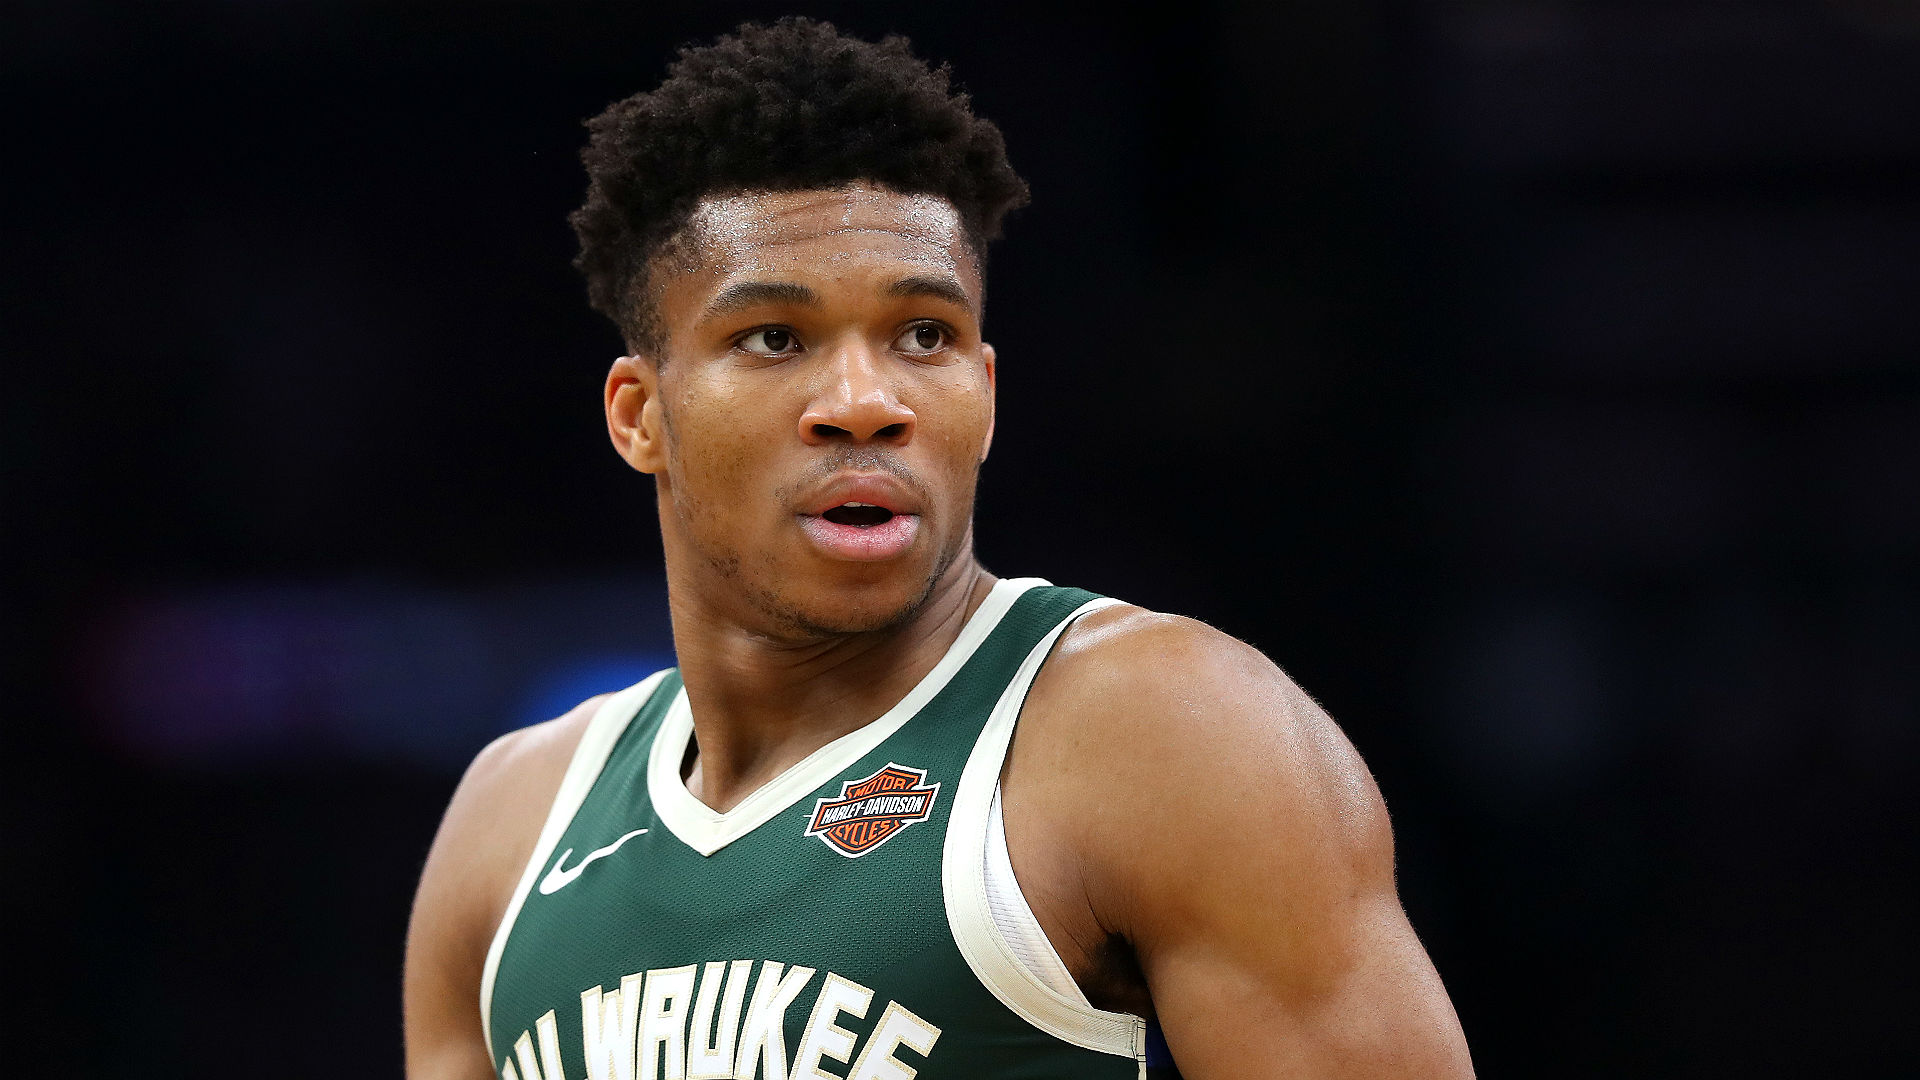 Do not expect Giannis Antetokounmpo to play all 48 minutes, or even 45, to try to keep the Milwaukee Bucks alive in the NBA playoffs.